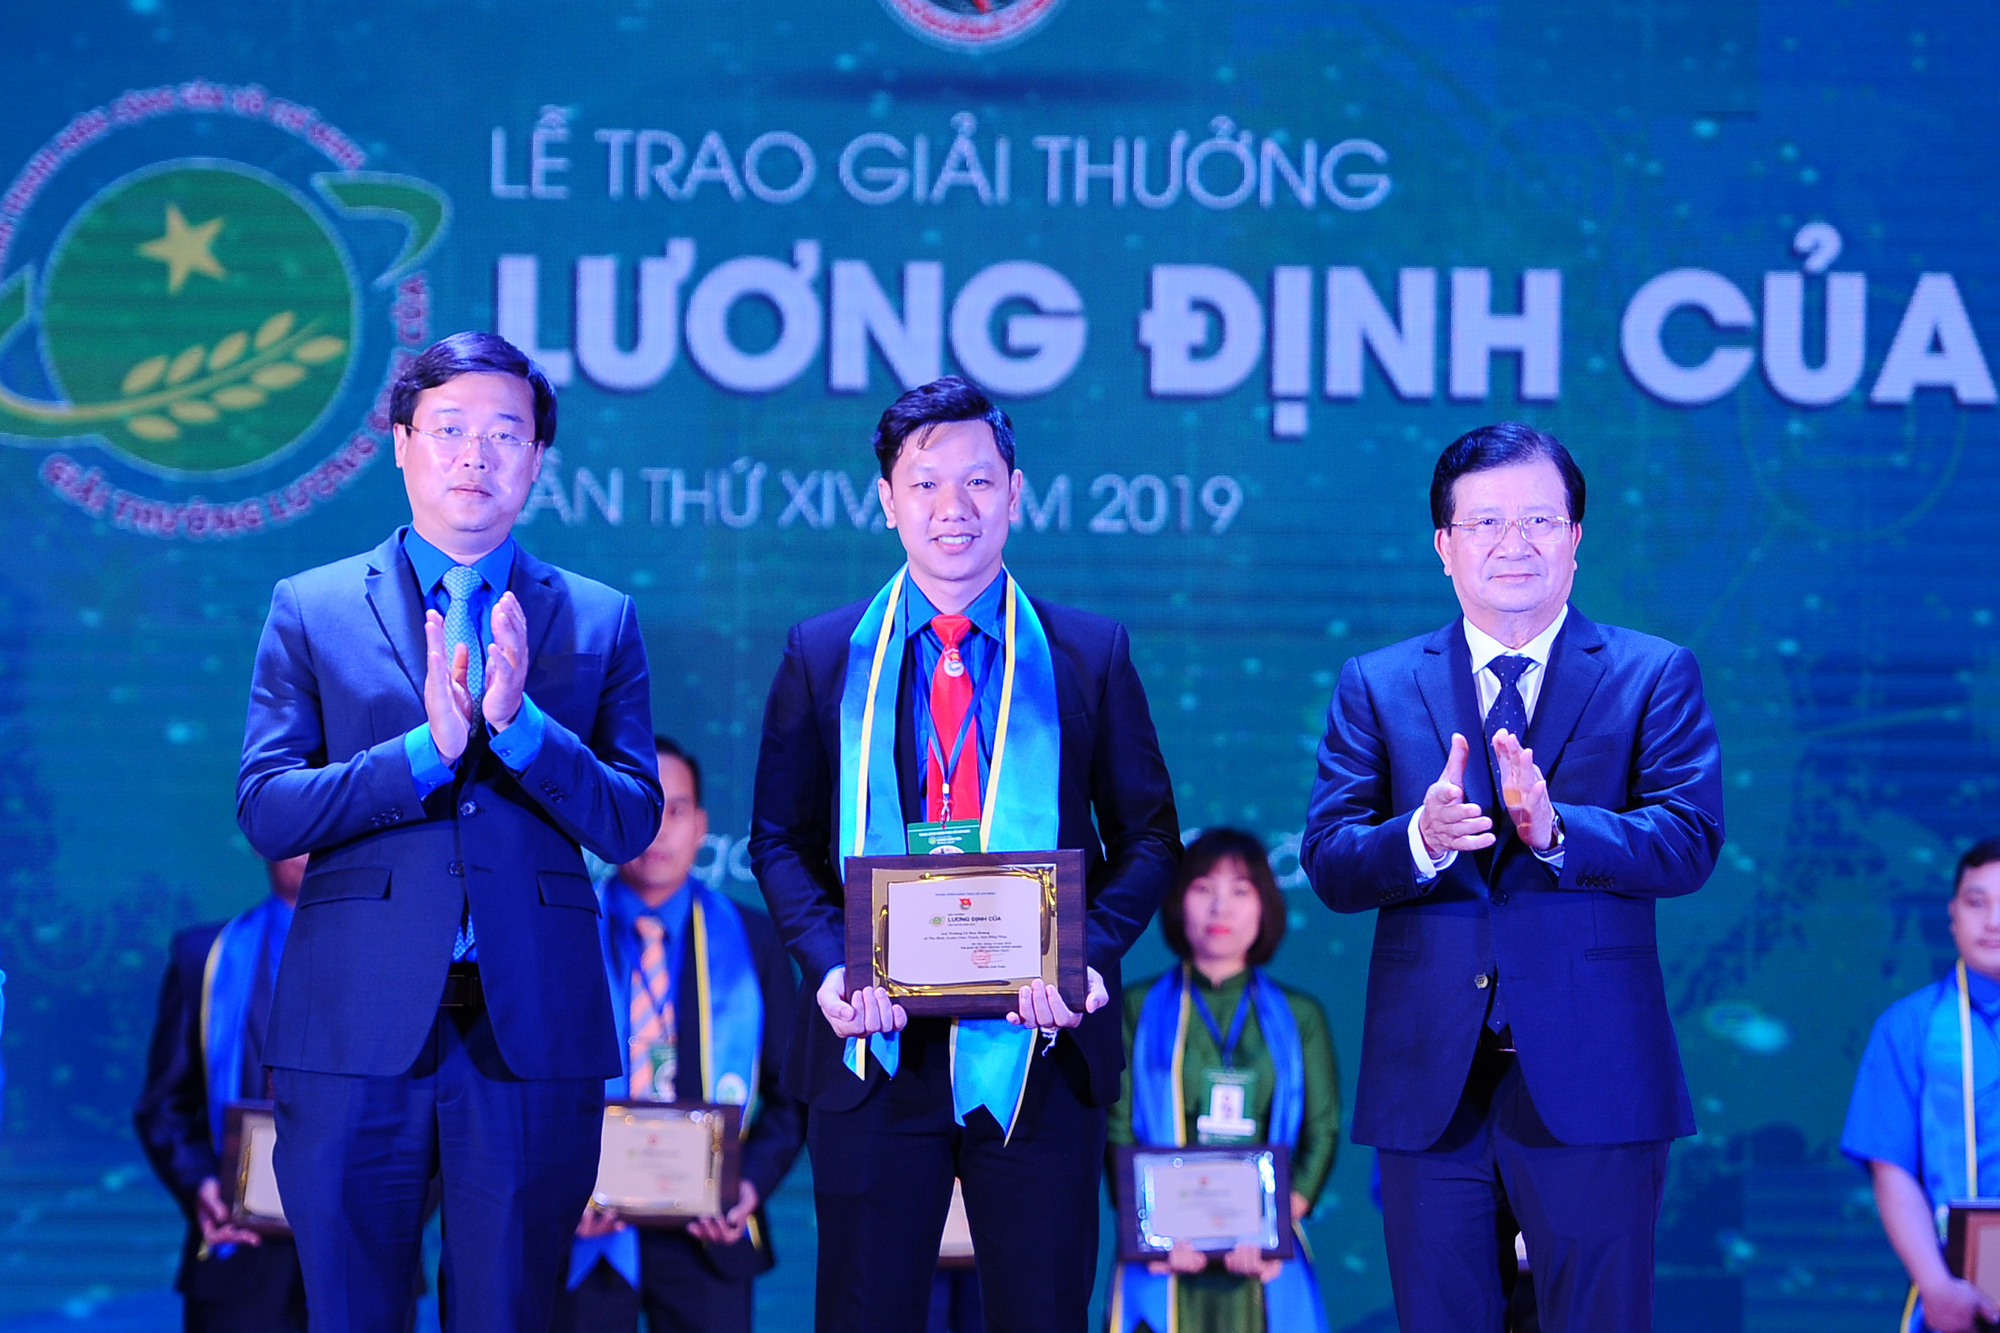 Truong Le Huy Hoang receives the 2019 Luong Dinh Cua awards for agricultural entrepreneurs who benefit the community in this supplied photo.